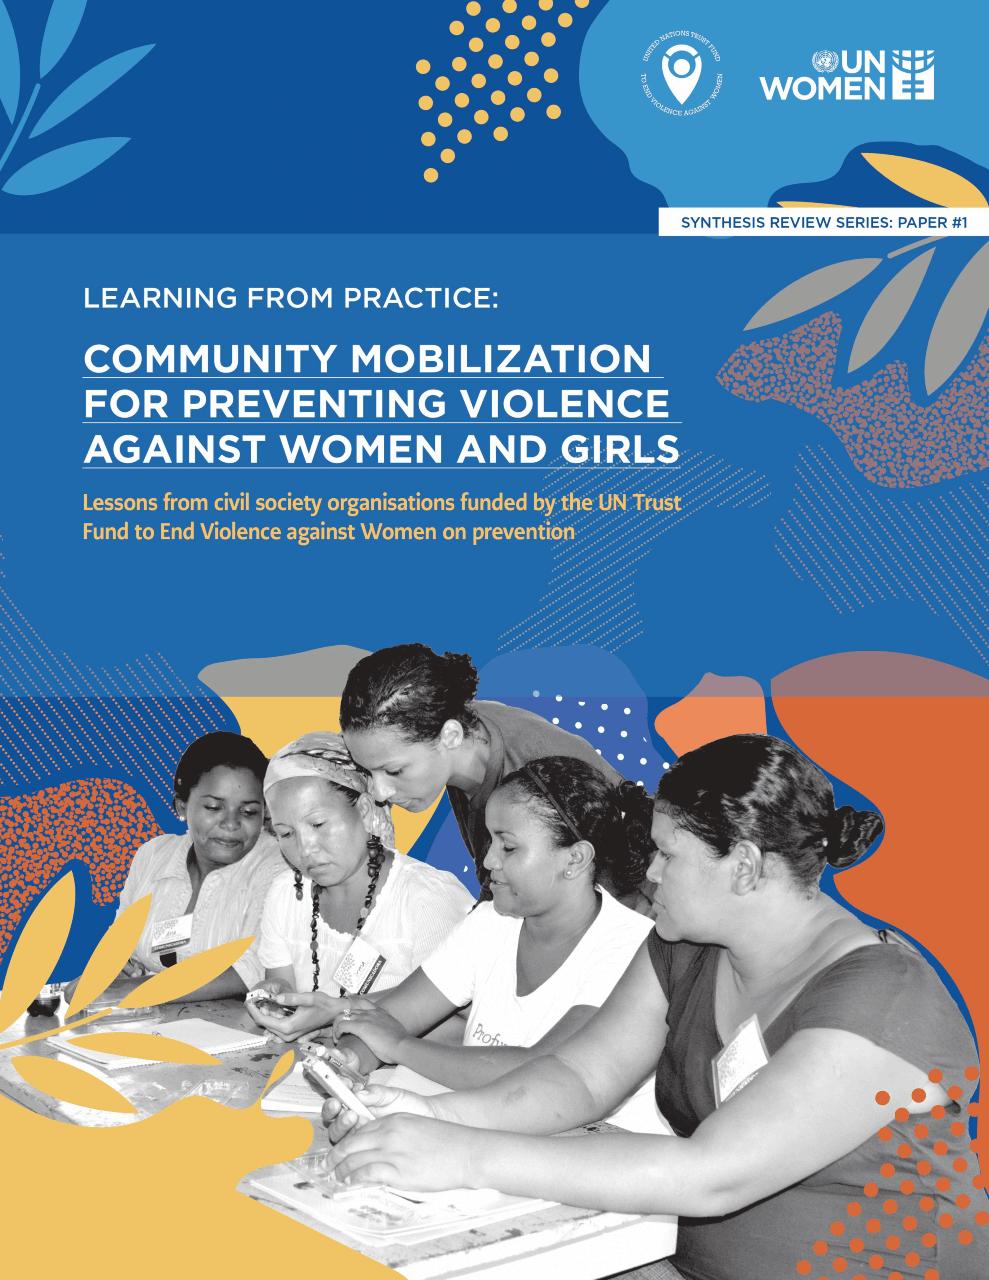 Community mobilization to prevent violence against women and girls